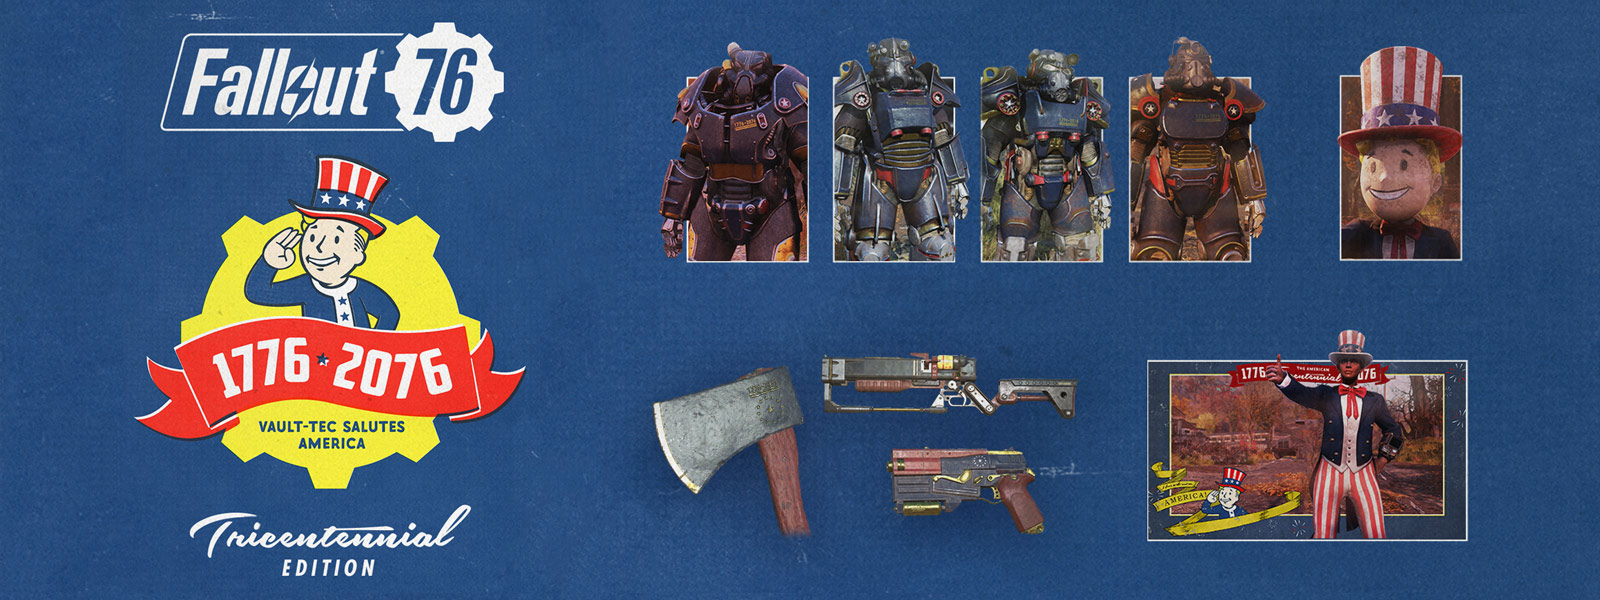 Fallout 76, spectacularly handsome vault boy saluting with a tricentennial banner, and a collage of power armor and weapons on a blue textured background